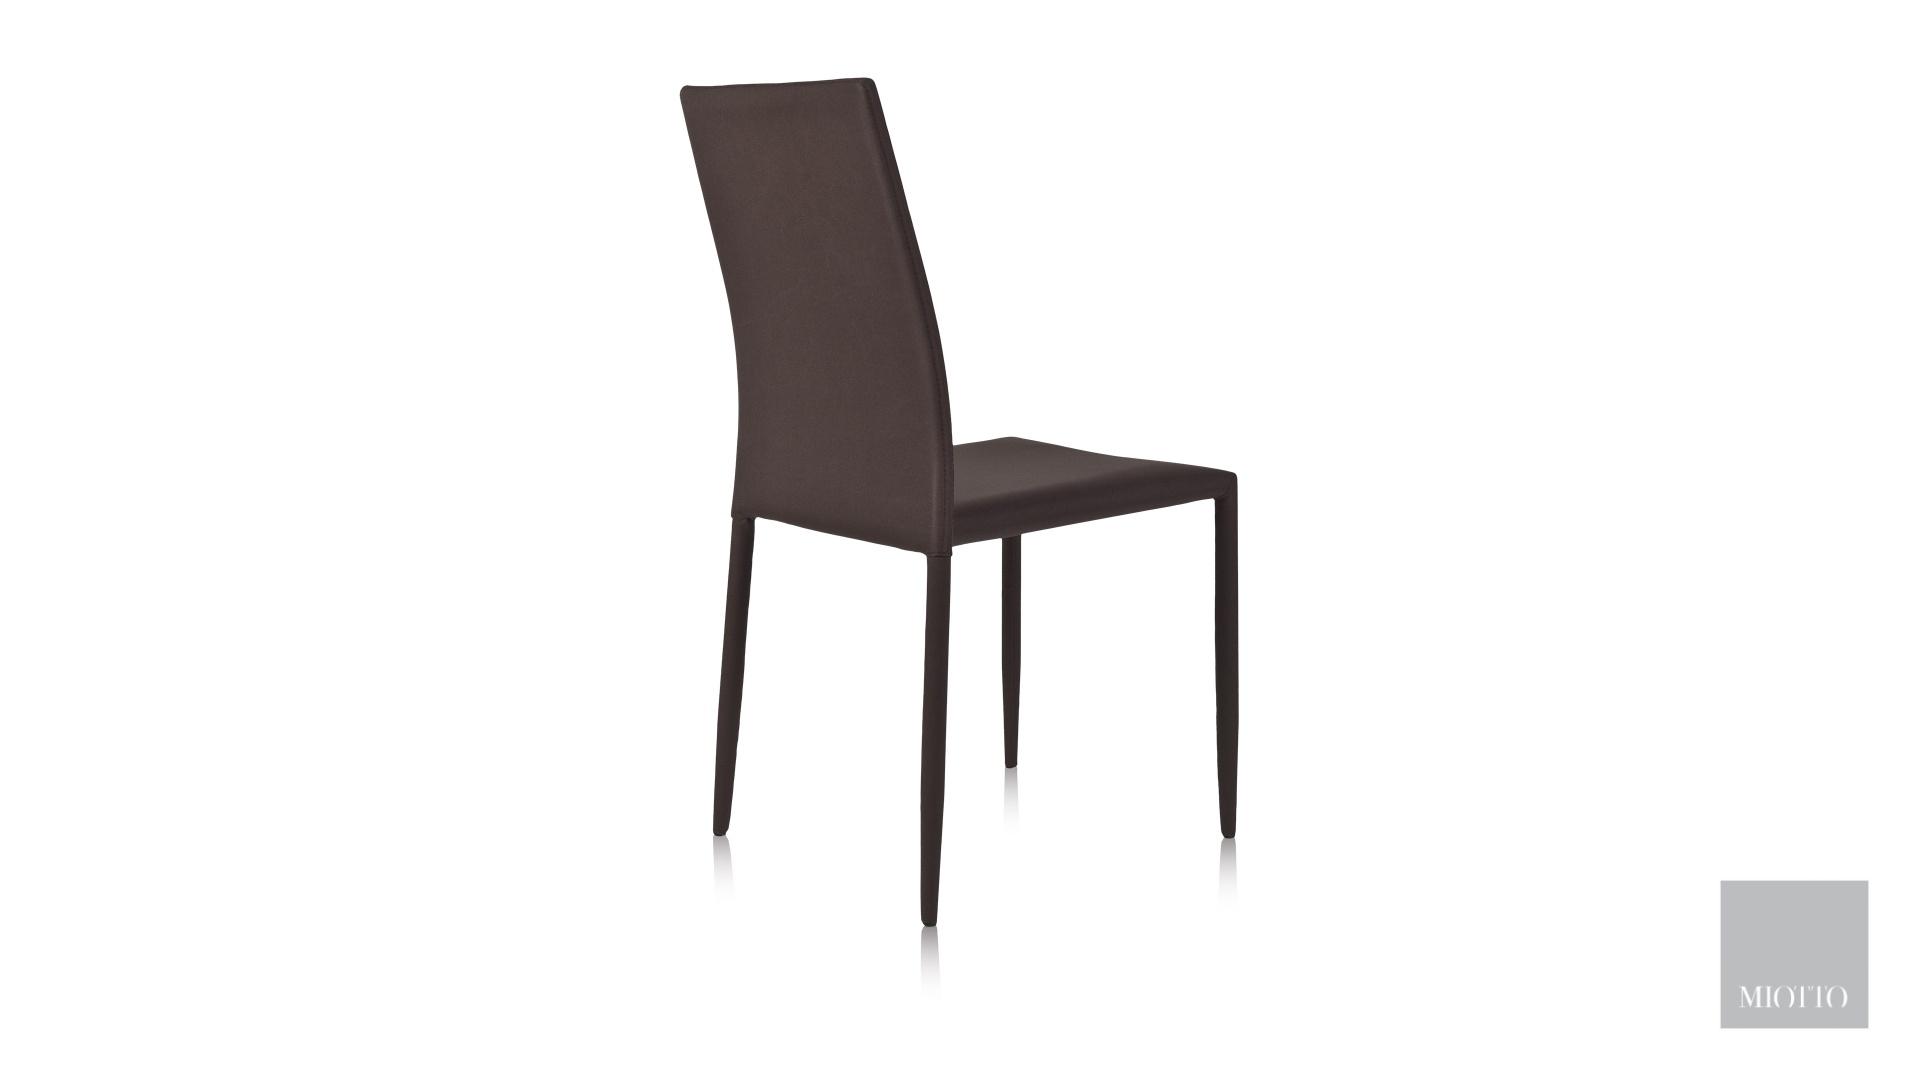 miotto_Lara fabric dining chair grey brown back miotto furniture